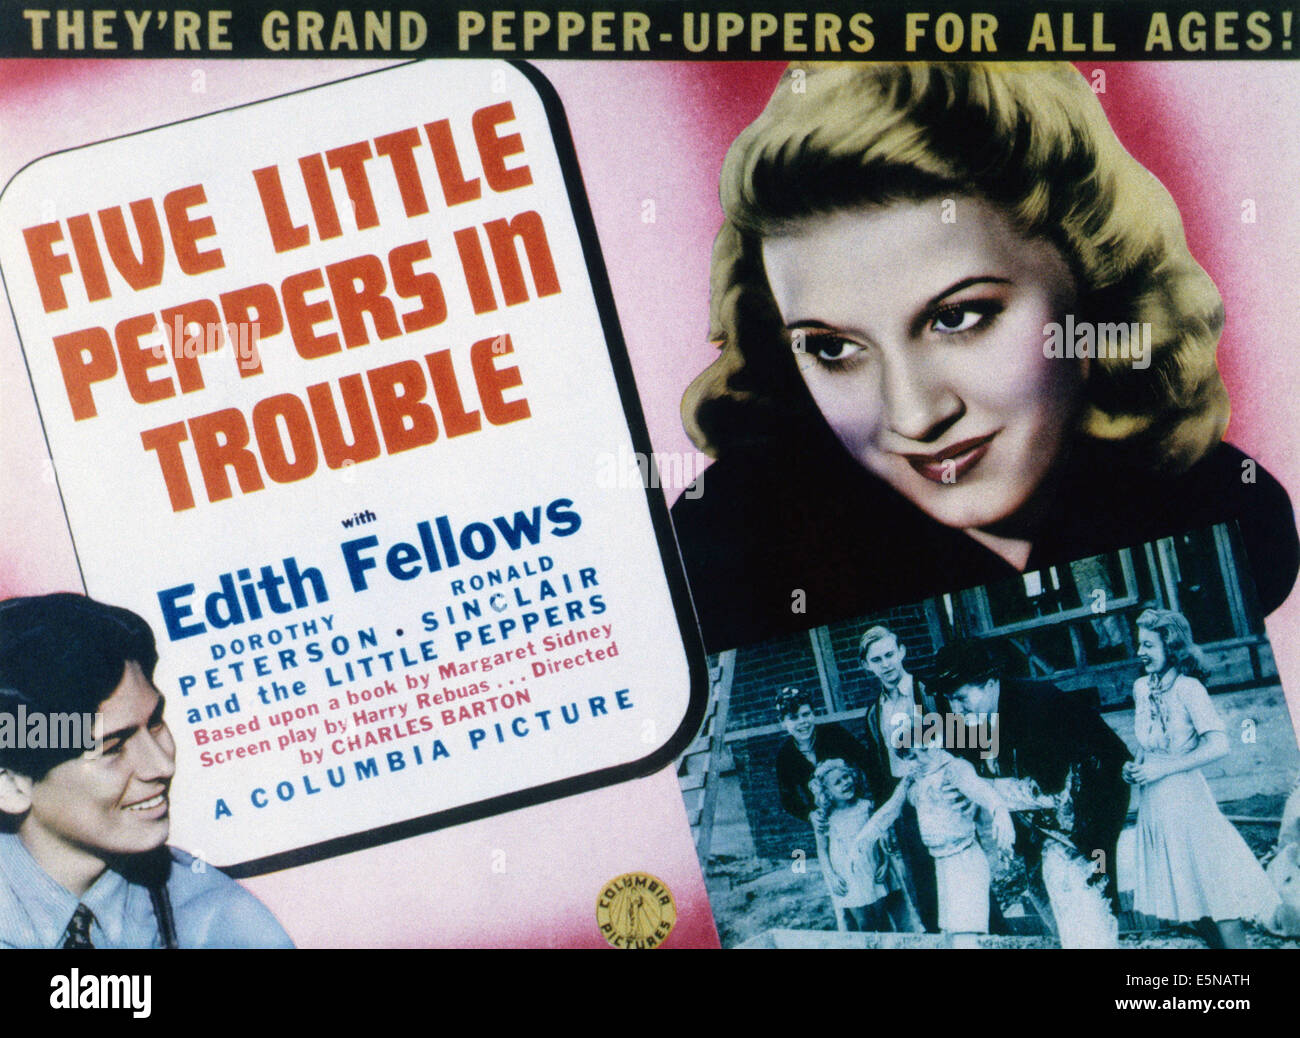 FIVE LITTLE PEPPERS IN TROUBLE, from left, Ronald Sinclair, Edith Fellows, 1940 - Stock Image